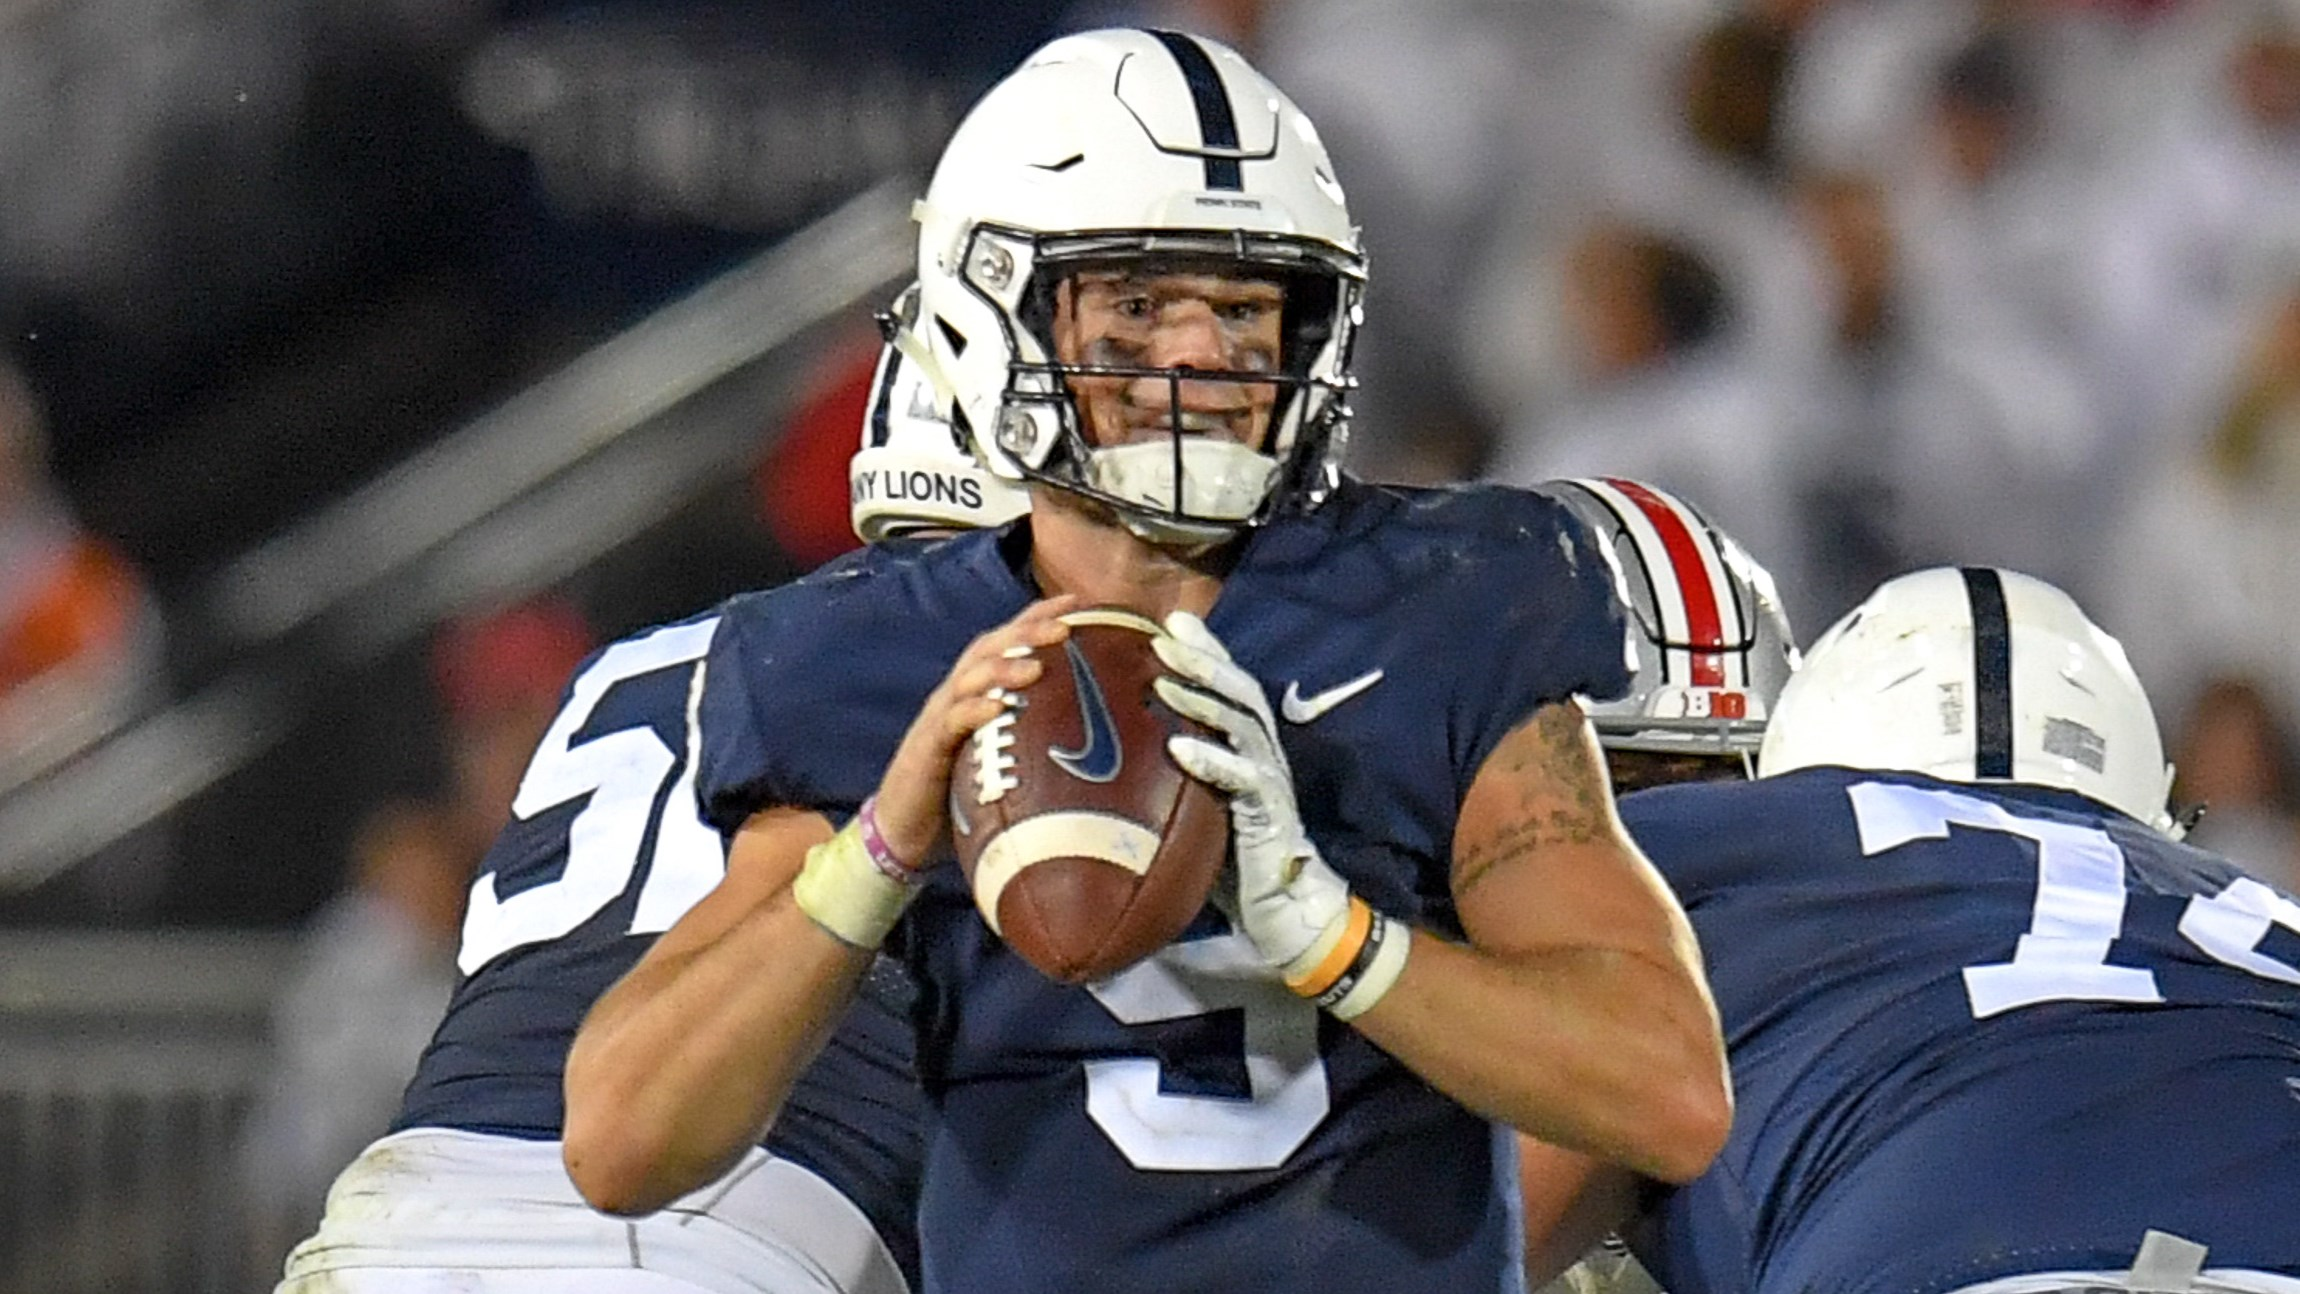 Penn State s Trace McSorley (9) during fourth quarter action of the Nittany  Lions game. Football ... f01568808